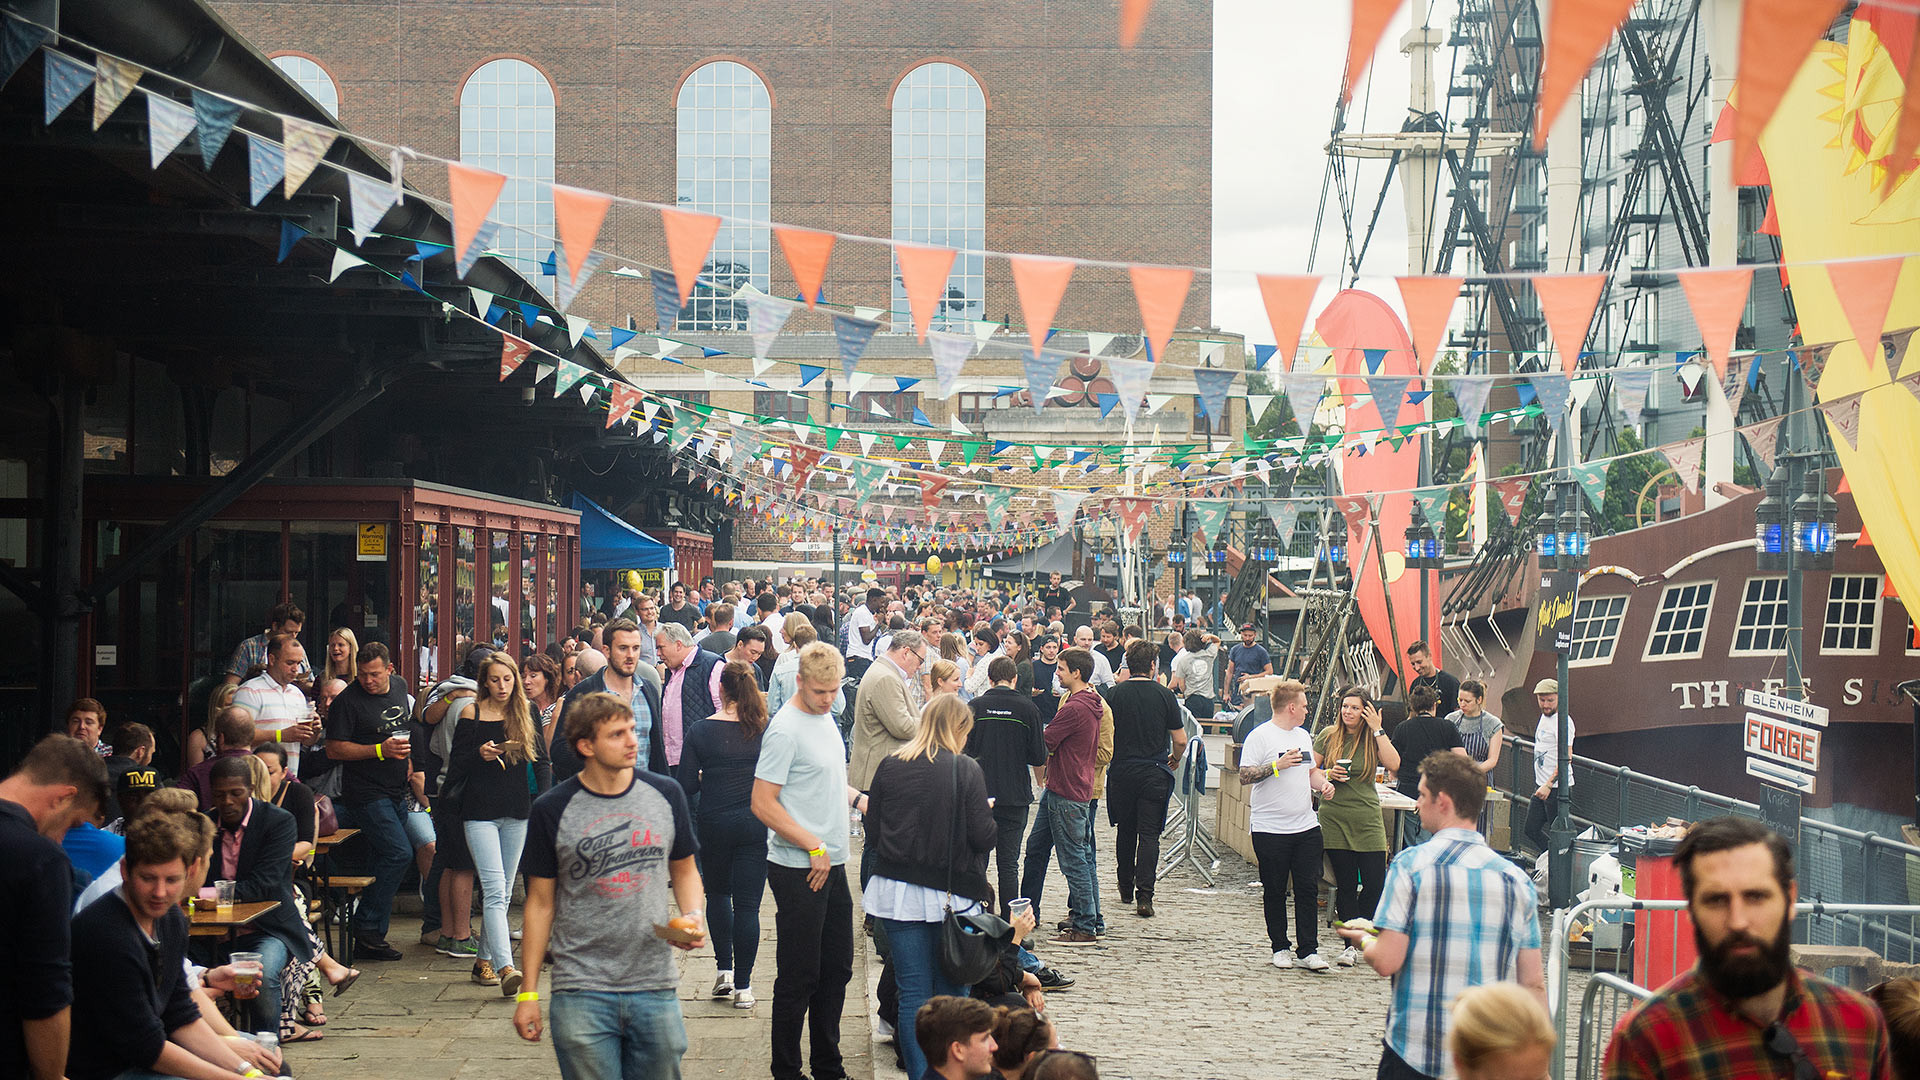 Meatopia takes place at Tobacco Dock